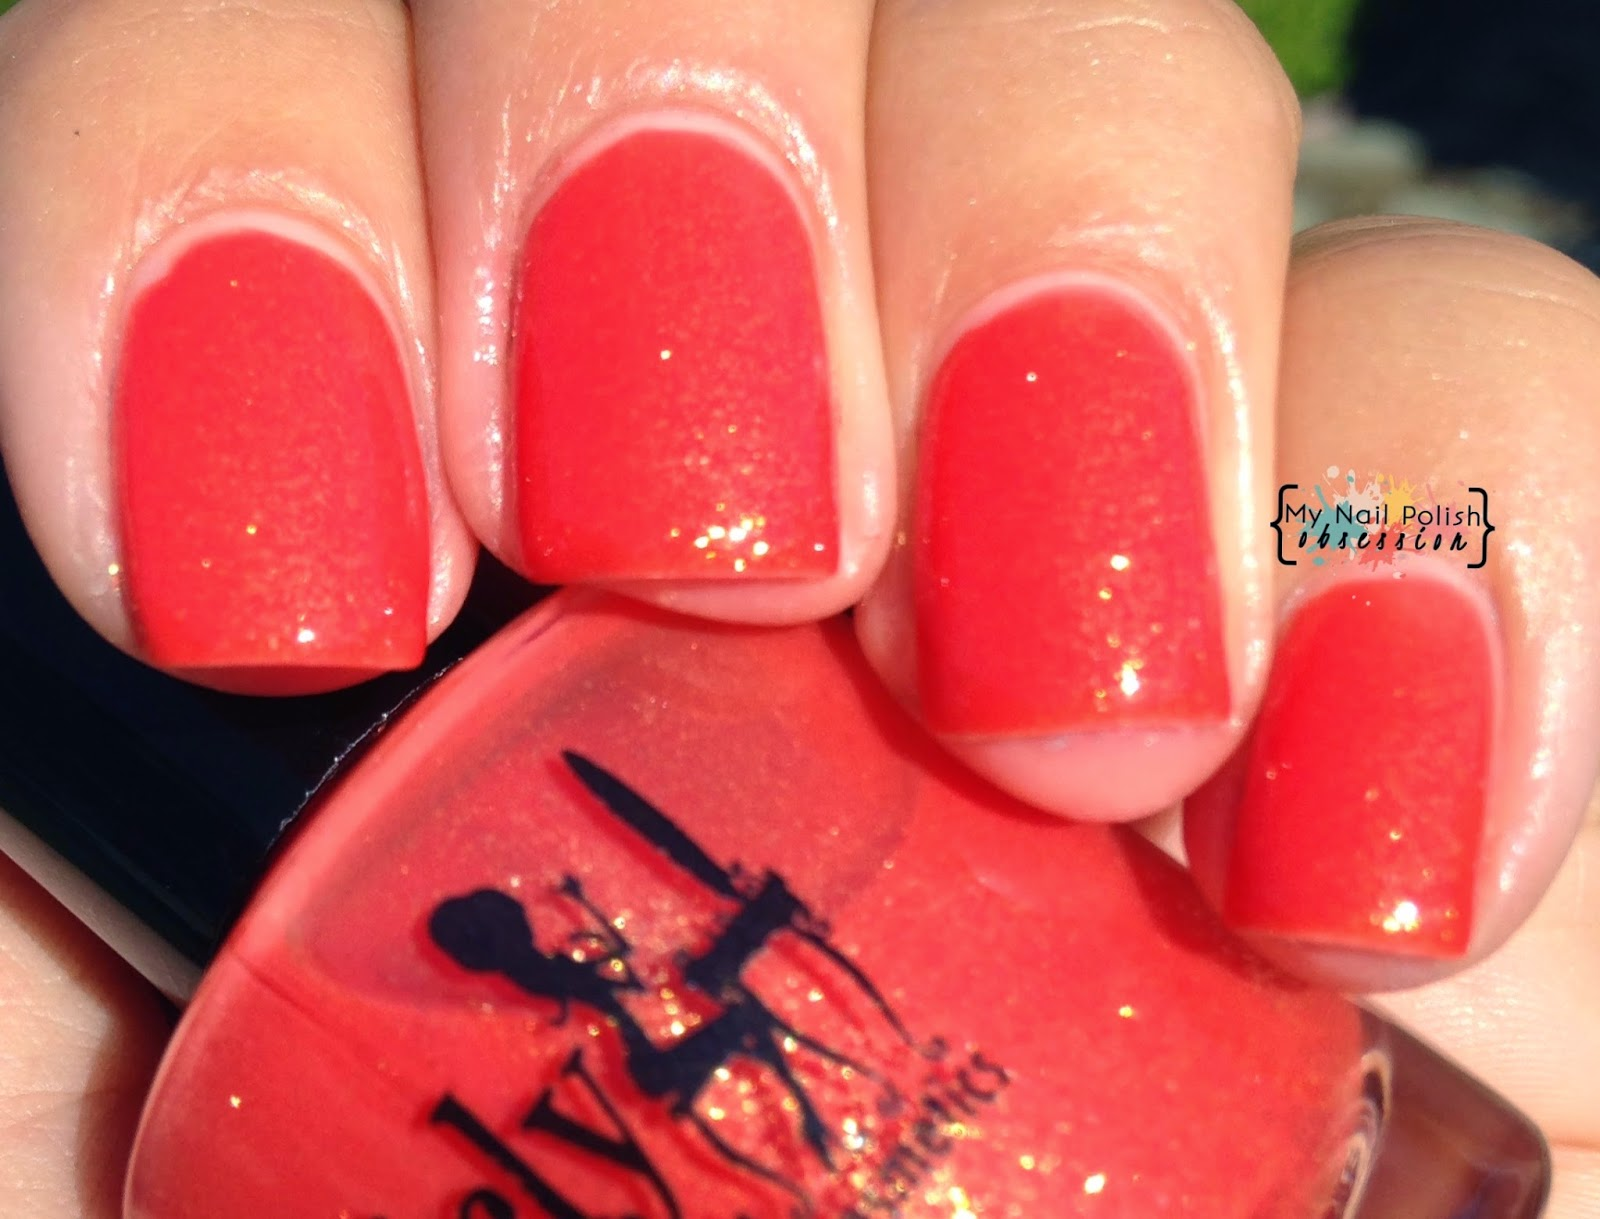 Girly Bits Sailor's Delight